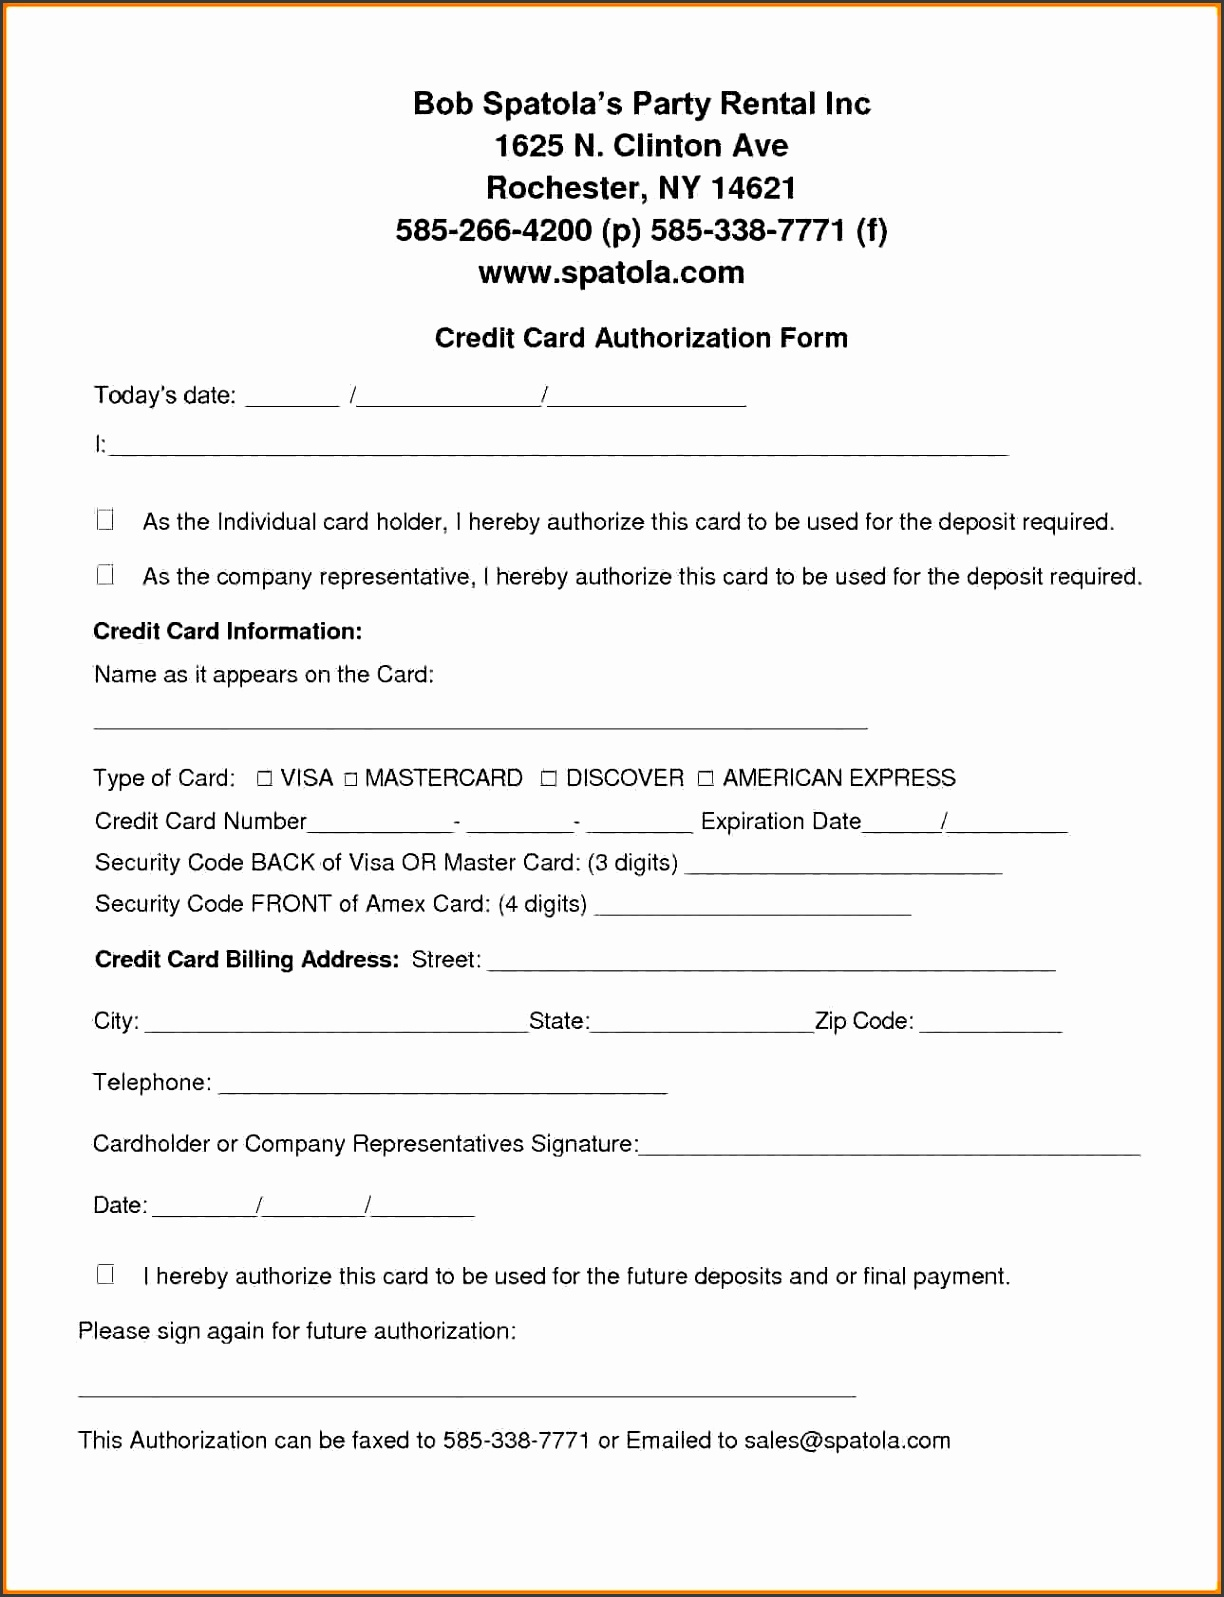 credit card authorization template Credit Card Authorization Form Template Free